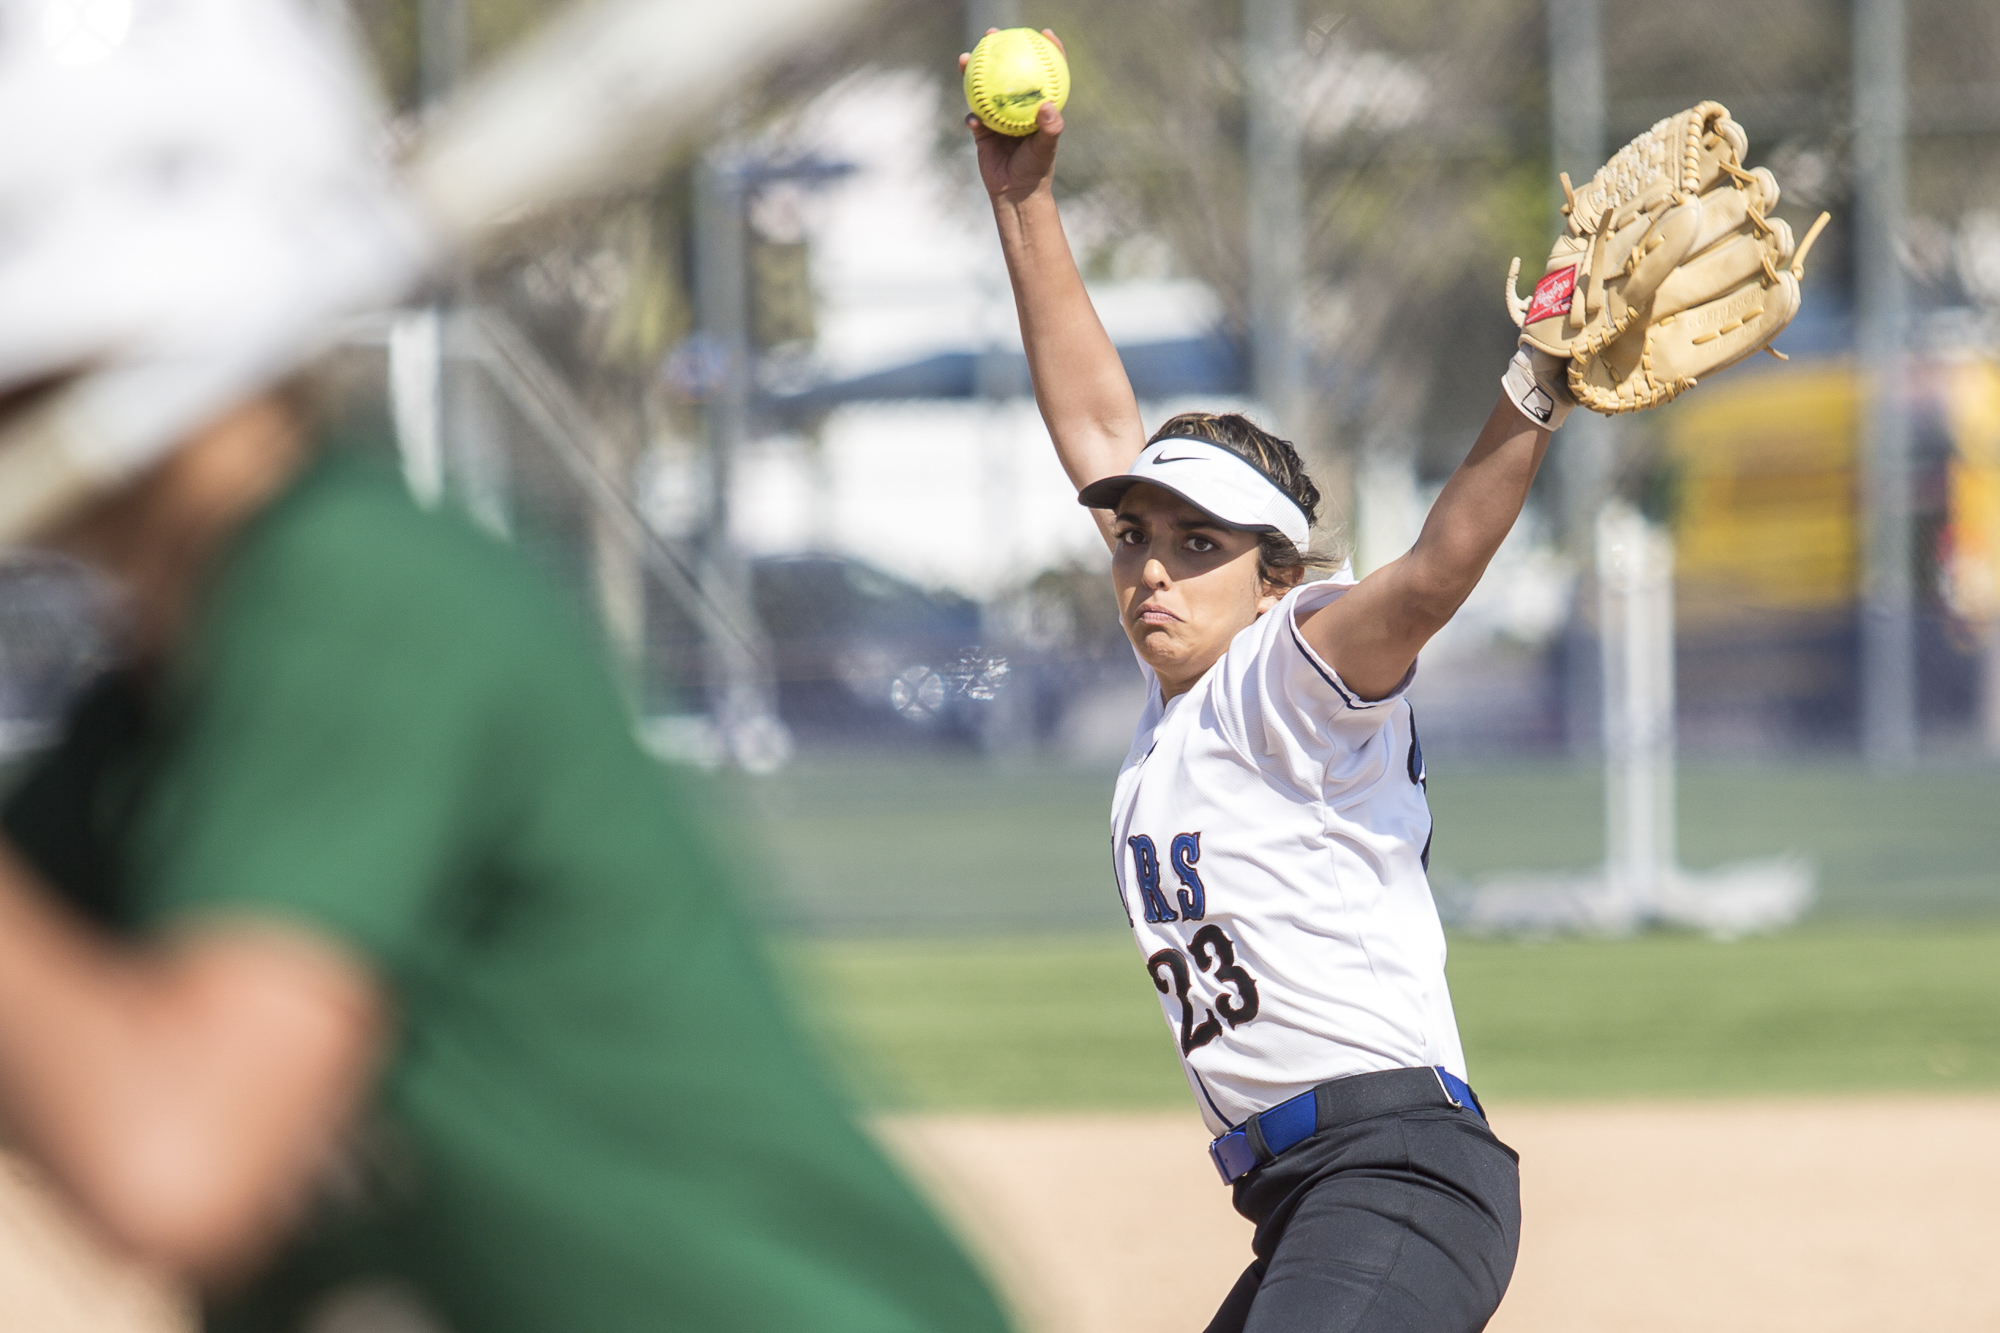 Santa Monica College freshman pitcher Taylor Liebesman winds up to pitch the ball at the Cuesta College Cougar batter at the John Adams Middle School field in Santa Monica California, on Tuesday, April 3 2018. The Santa Monica Corsairs lost 6-5 against the Cuesta College Cougars in the ten-inning softball game. (Matthew Martin/Corsair Photo)